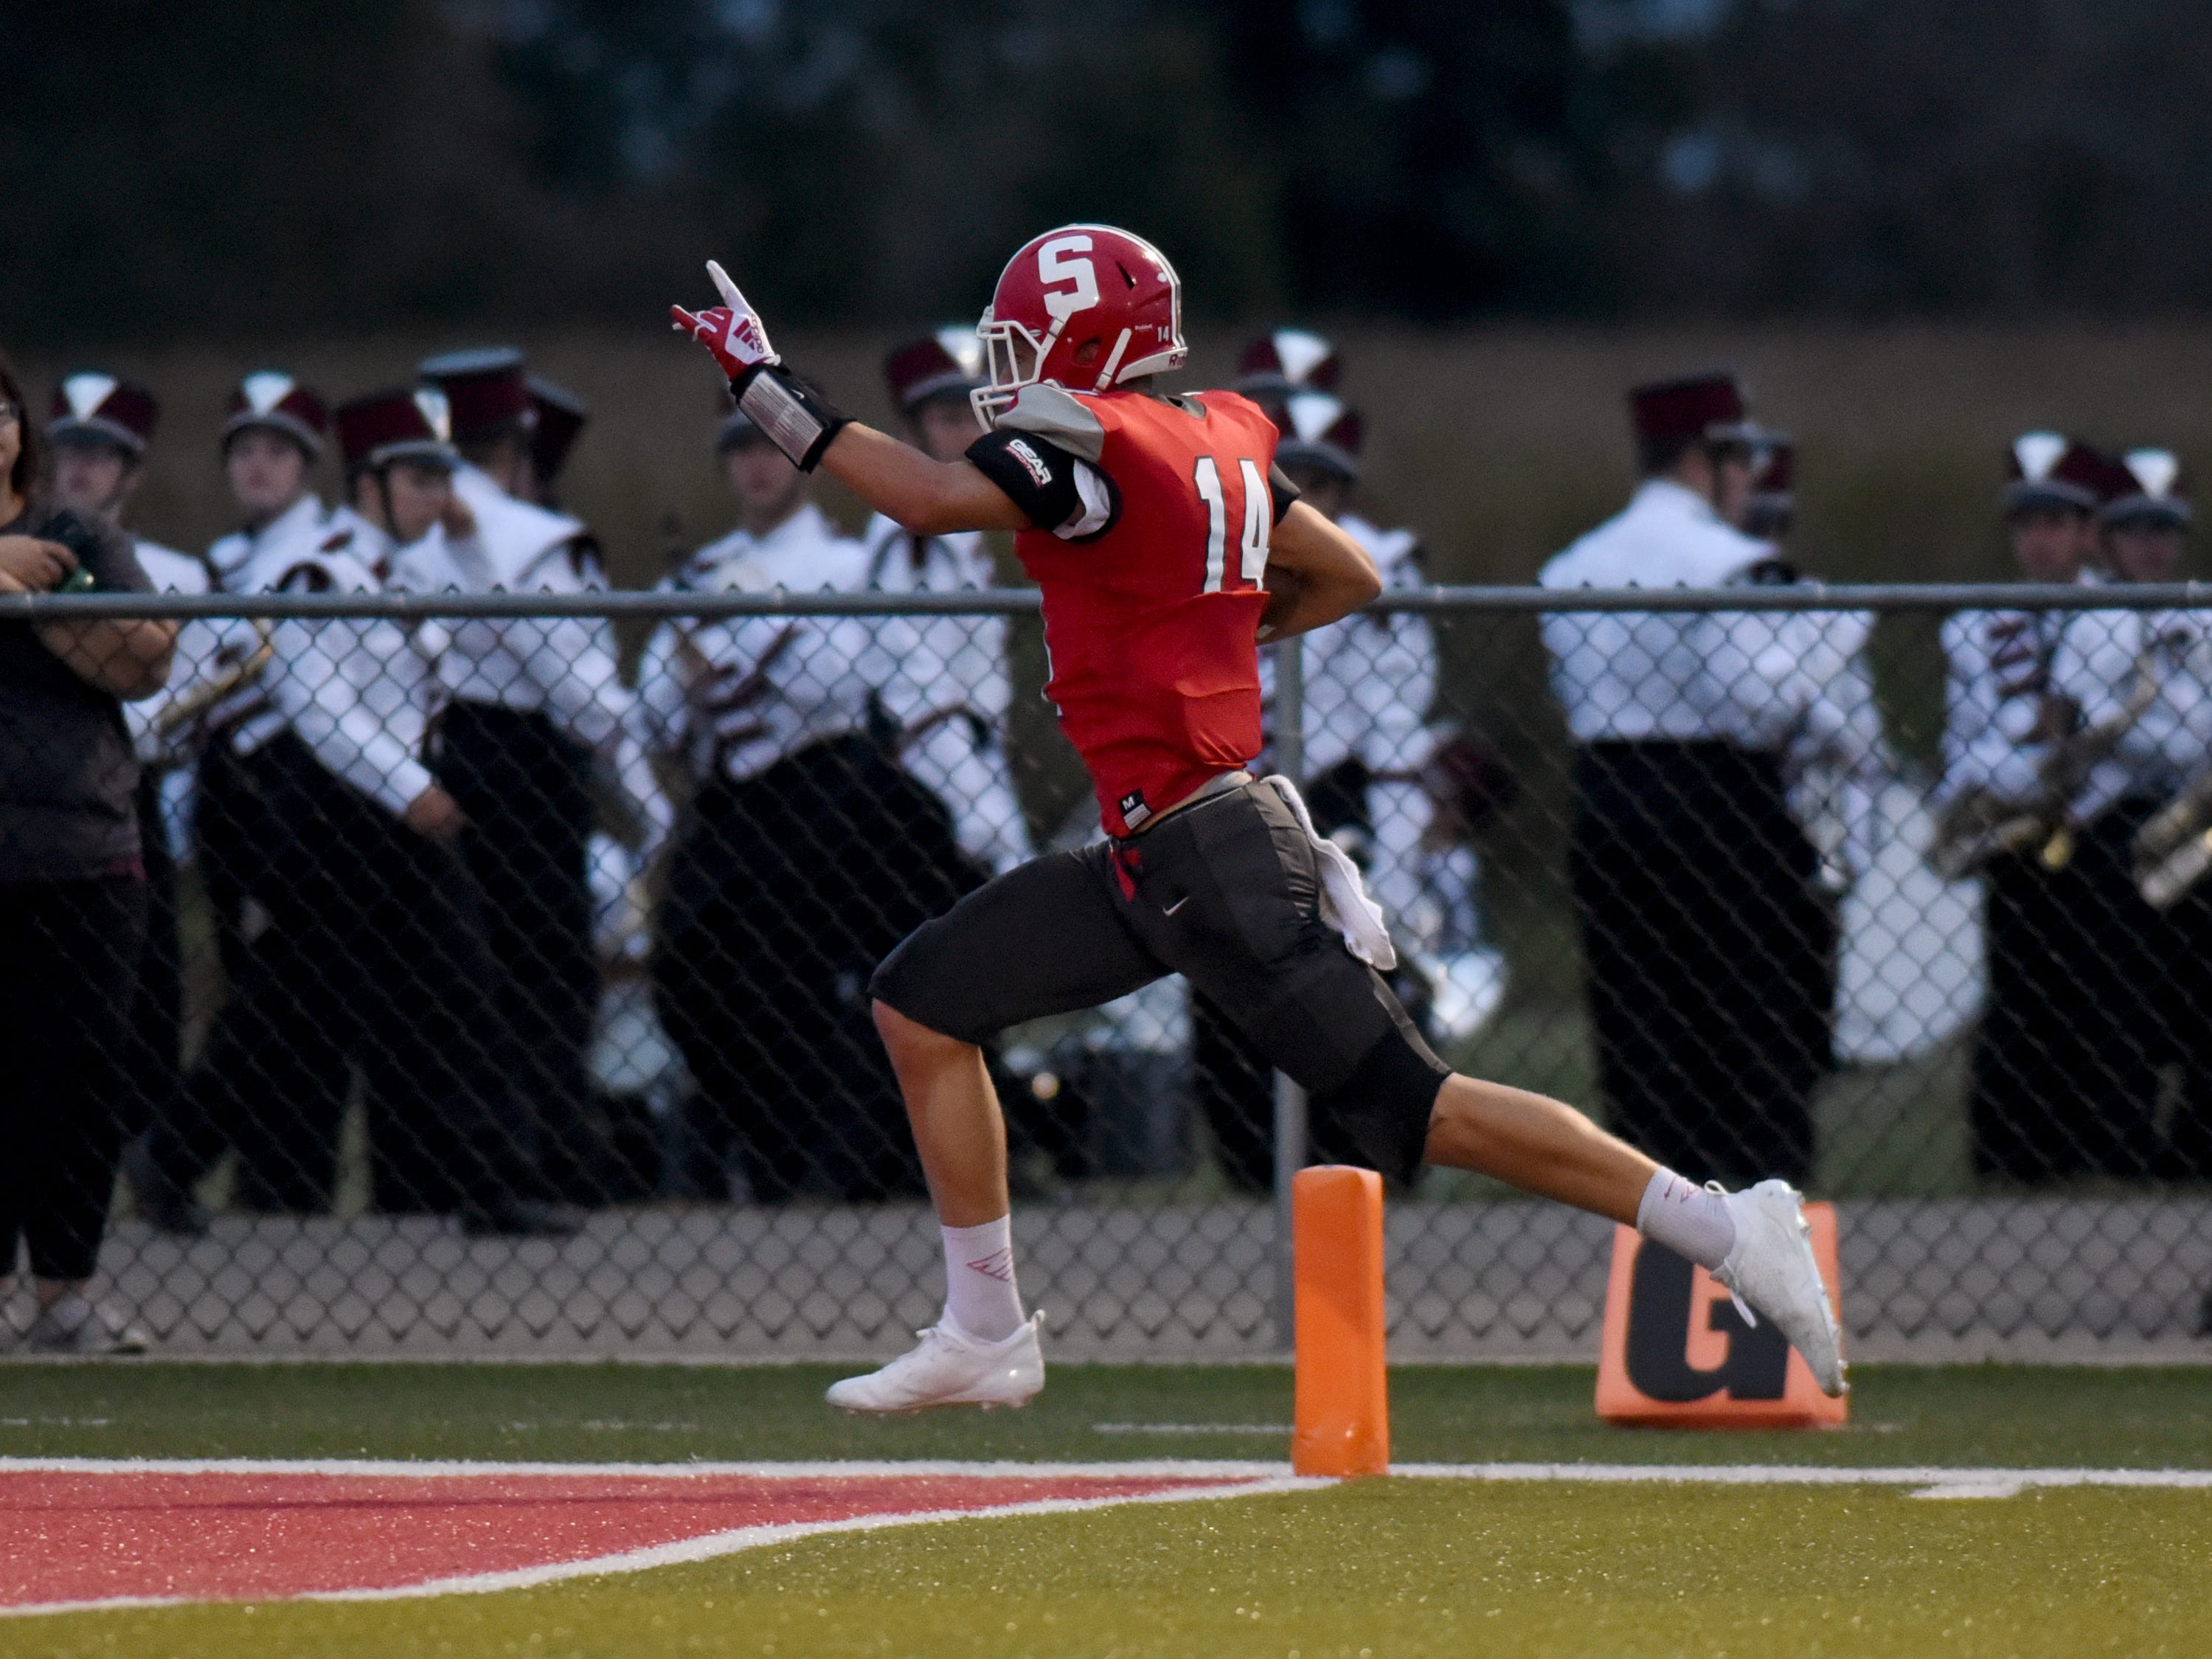 Logan Ranft catches a 51-yard touchdown catch in the second quarter of Sheridan's 37-7 win against John Glenn on Friday night at Paul Culver Jr. Stadium.